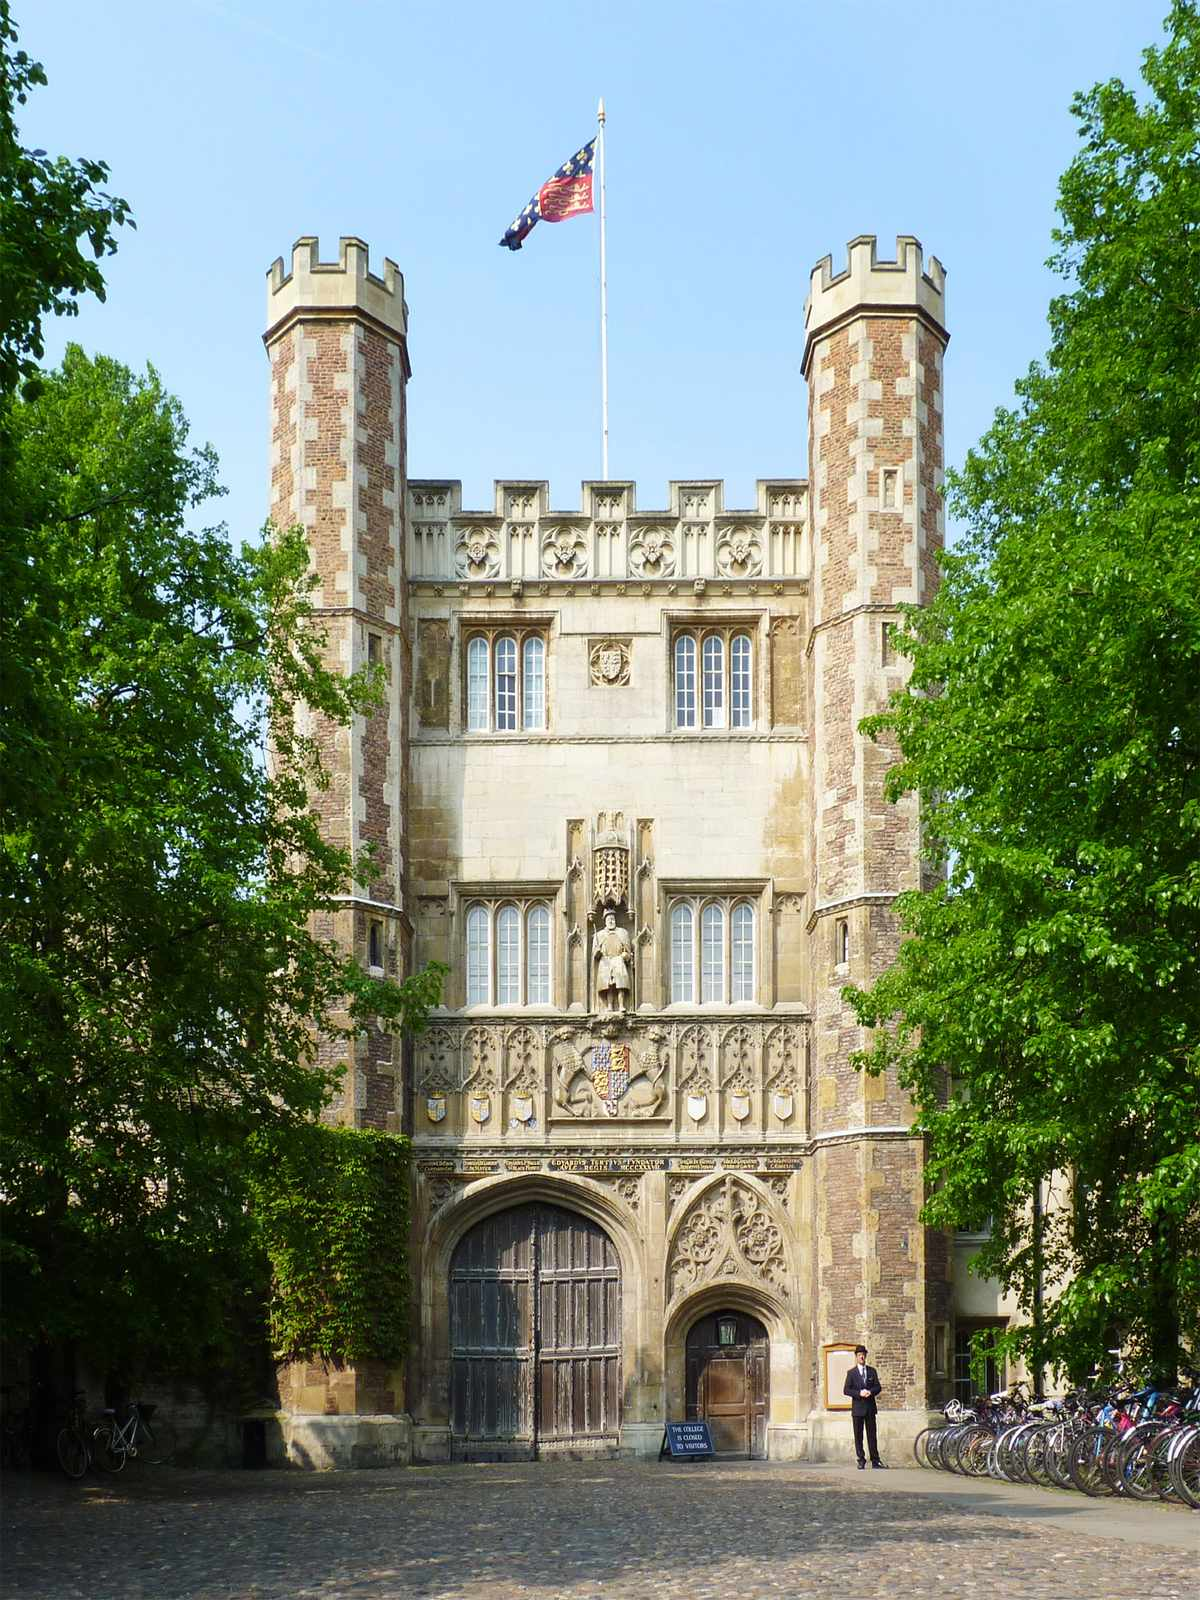 the cambridge university during the middle ages While progress in science was slow during this period in the west, the progress was steady and of a very high quality the foundation was laid here for the wonderful blossoming of science that was to occur in the high middle ages to come.